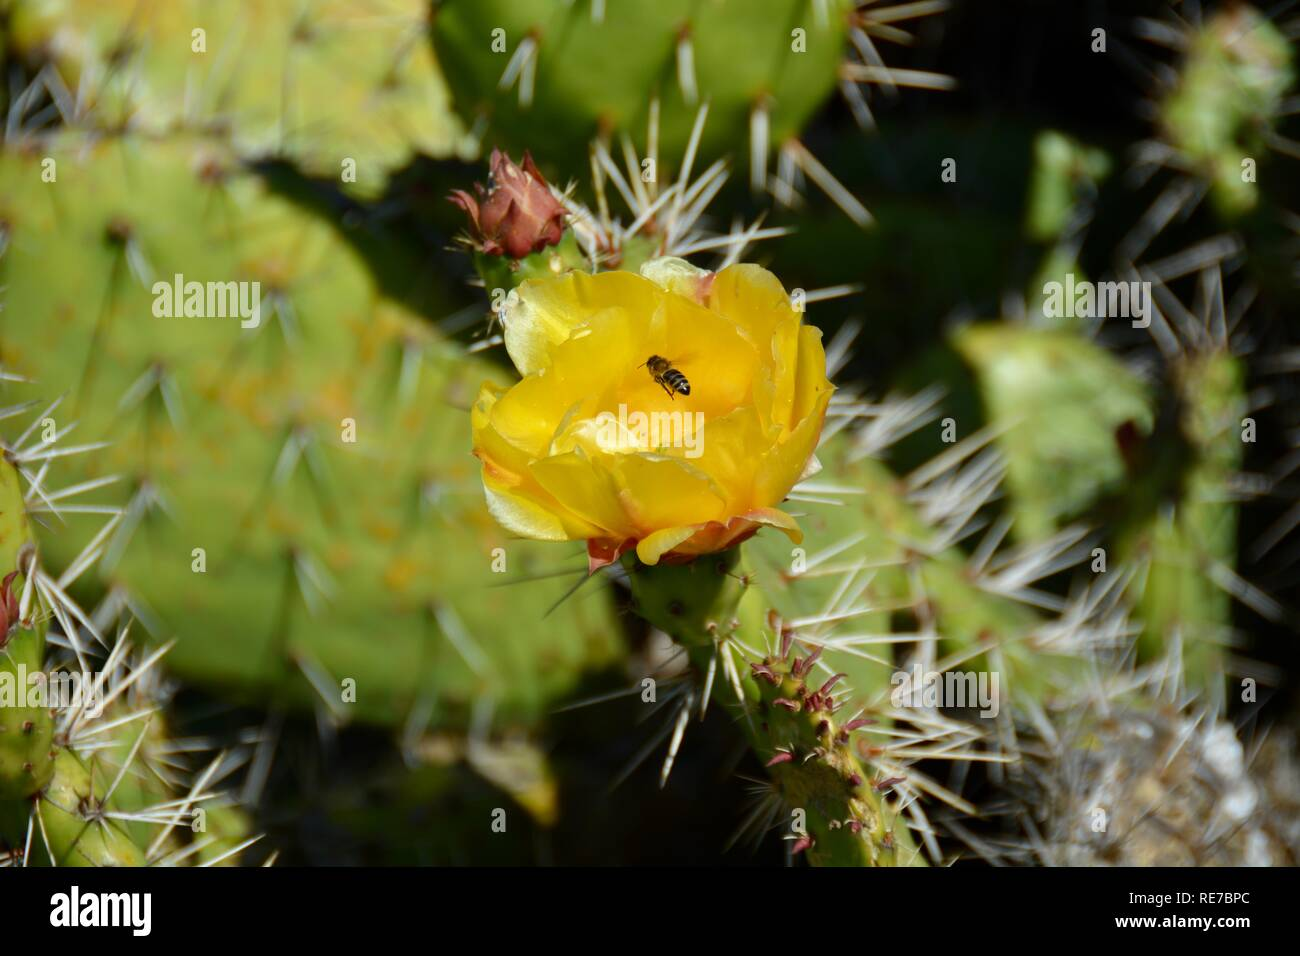 Bee gathering pollen from the yellow flower of a prickly pear cactus at Bolsa Chica Ecological Reserve. Prickly pear branches are edible when cooked. - Stock Image